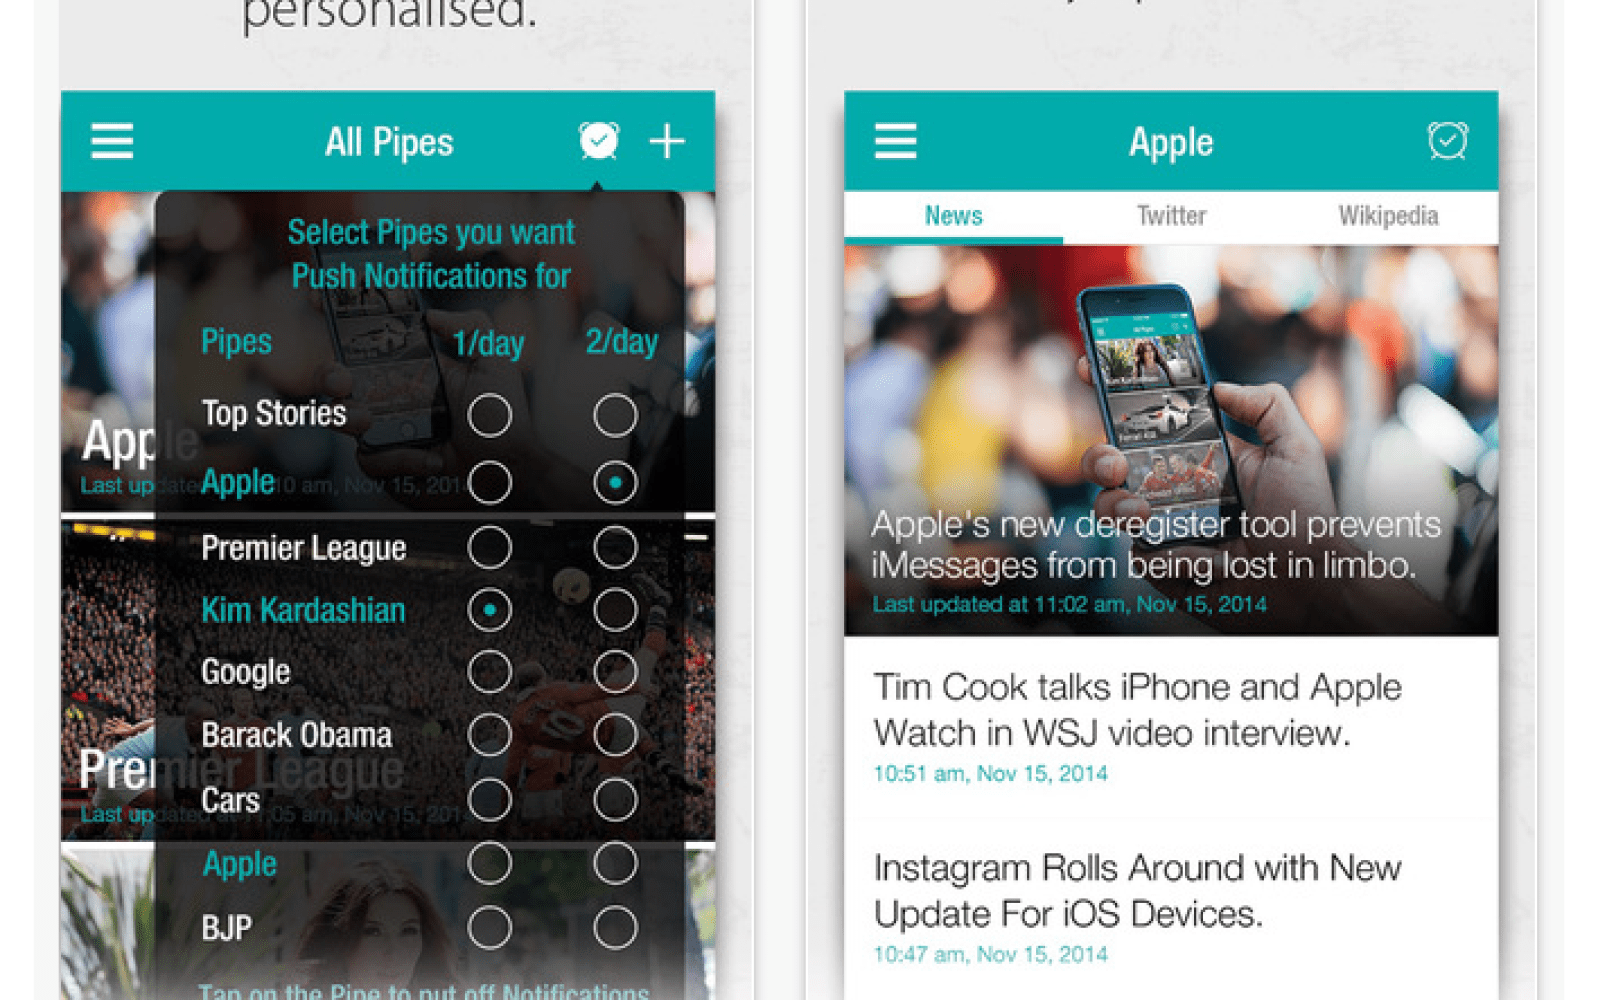 Personalized news feed app Pipes updated with new design, aggregated feeds, trending & more